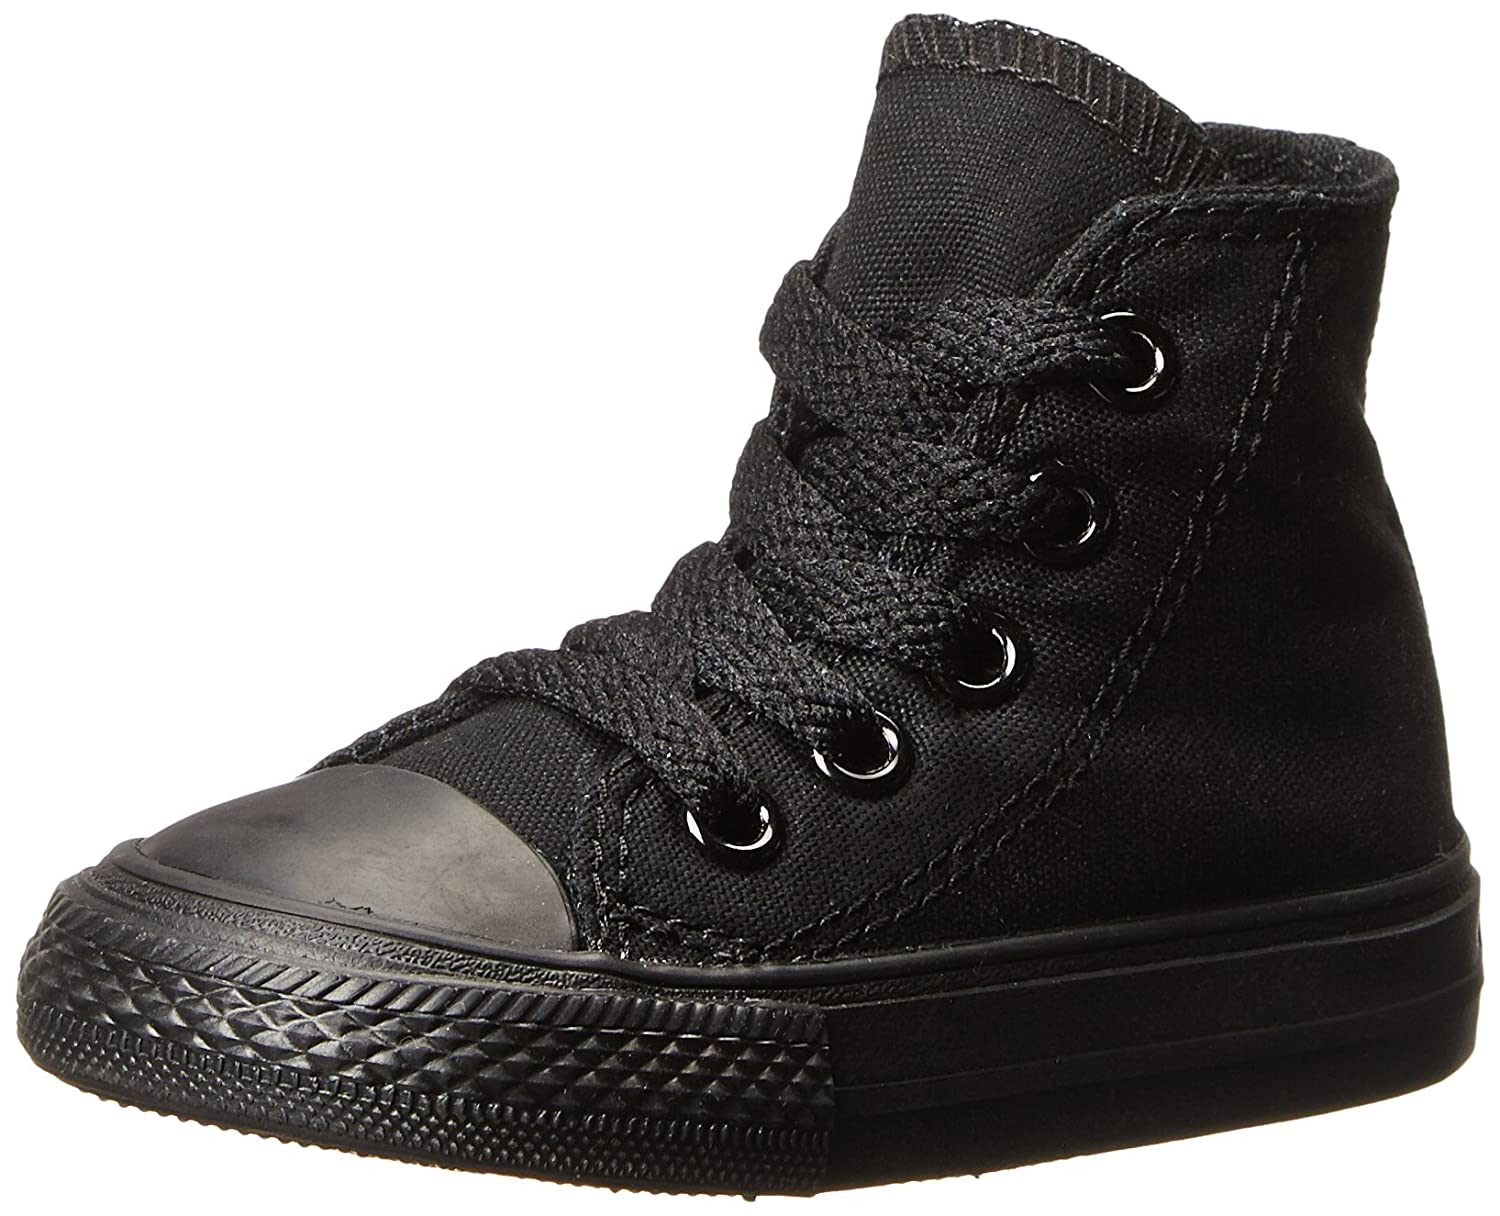 Converse Chuck Taylor All Star Season Hi, Unisex Sneaker  US 13.5M | UK 12.5 | EU 31|Black Monoch